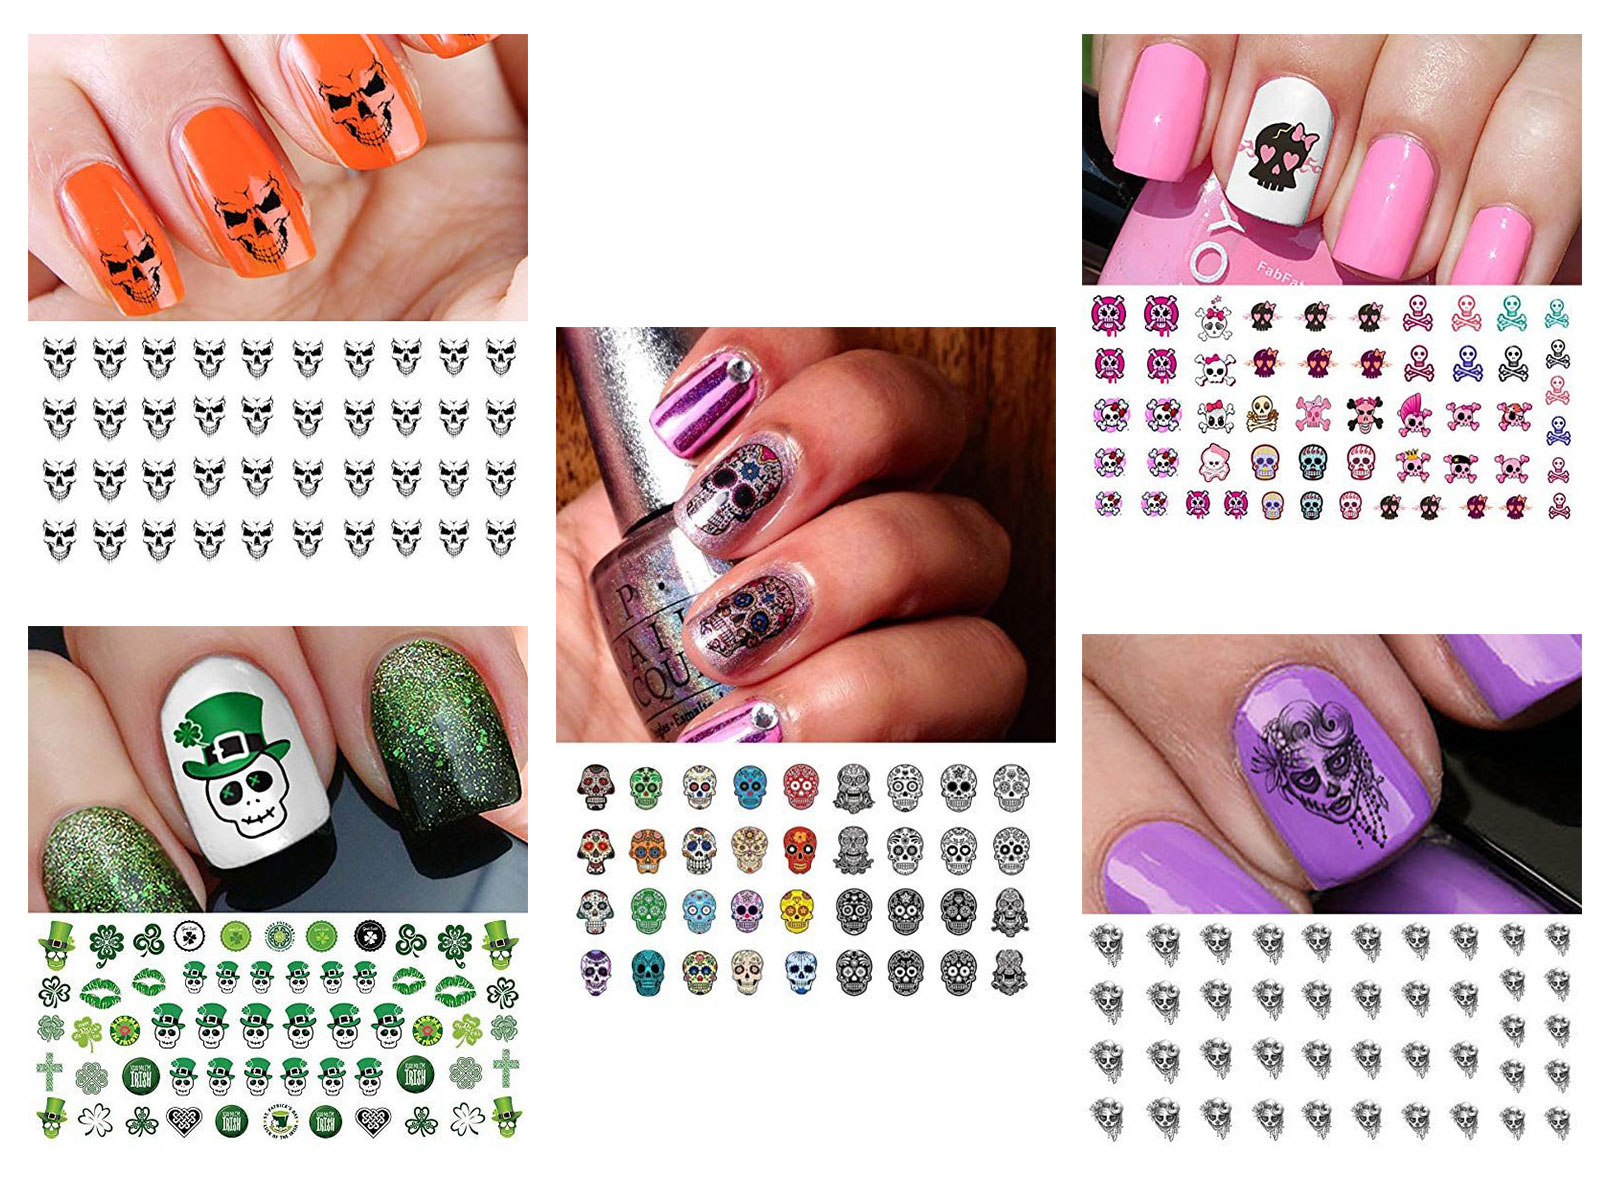 Skull-Nail-Art-Stickers-Designs-Trends-For-Halloween-2019 -Monster-Nails-F